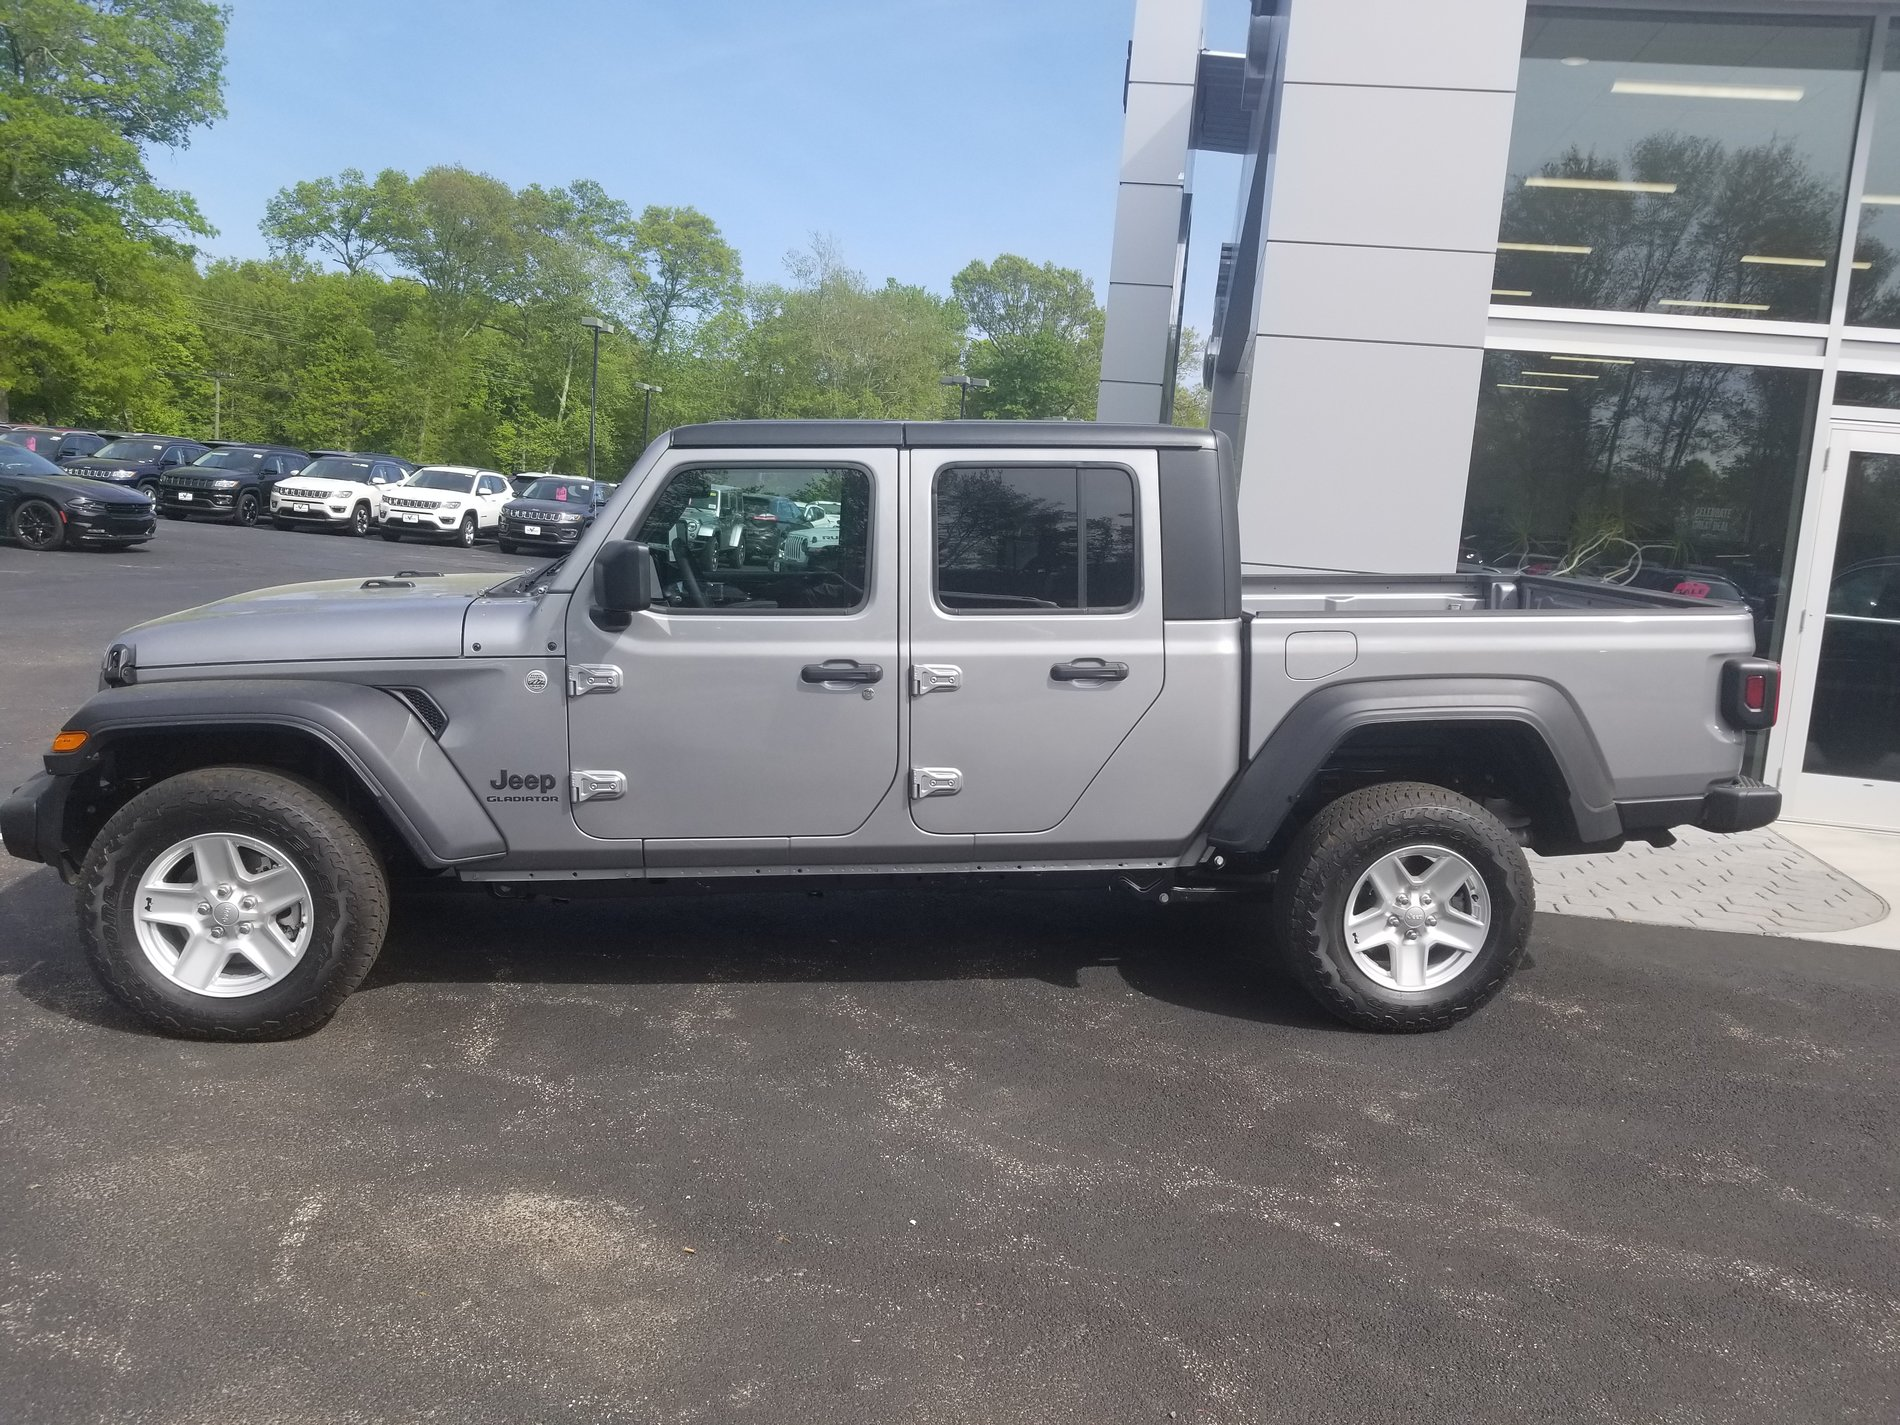 Max Tow Fenders This Is What They Look Like Jeep Gladiator Forum Jeepgladiatorforum Com